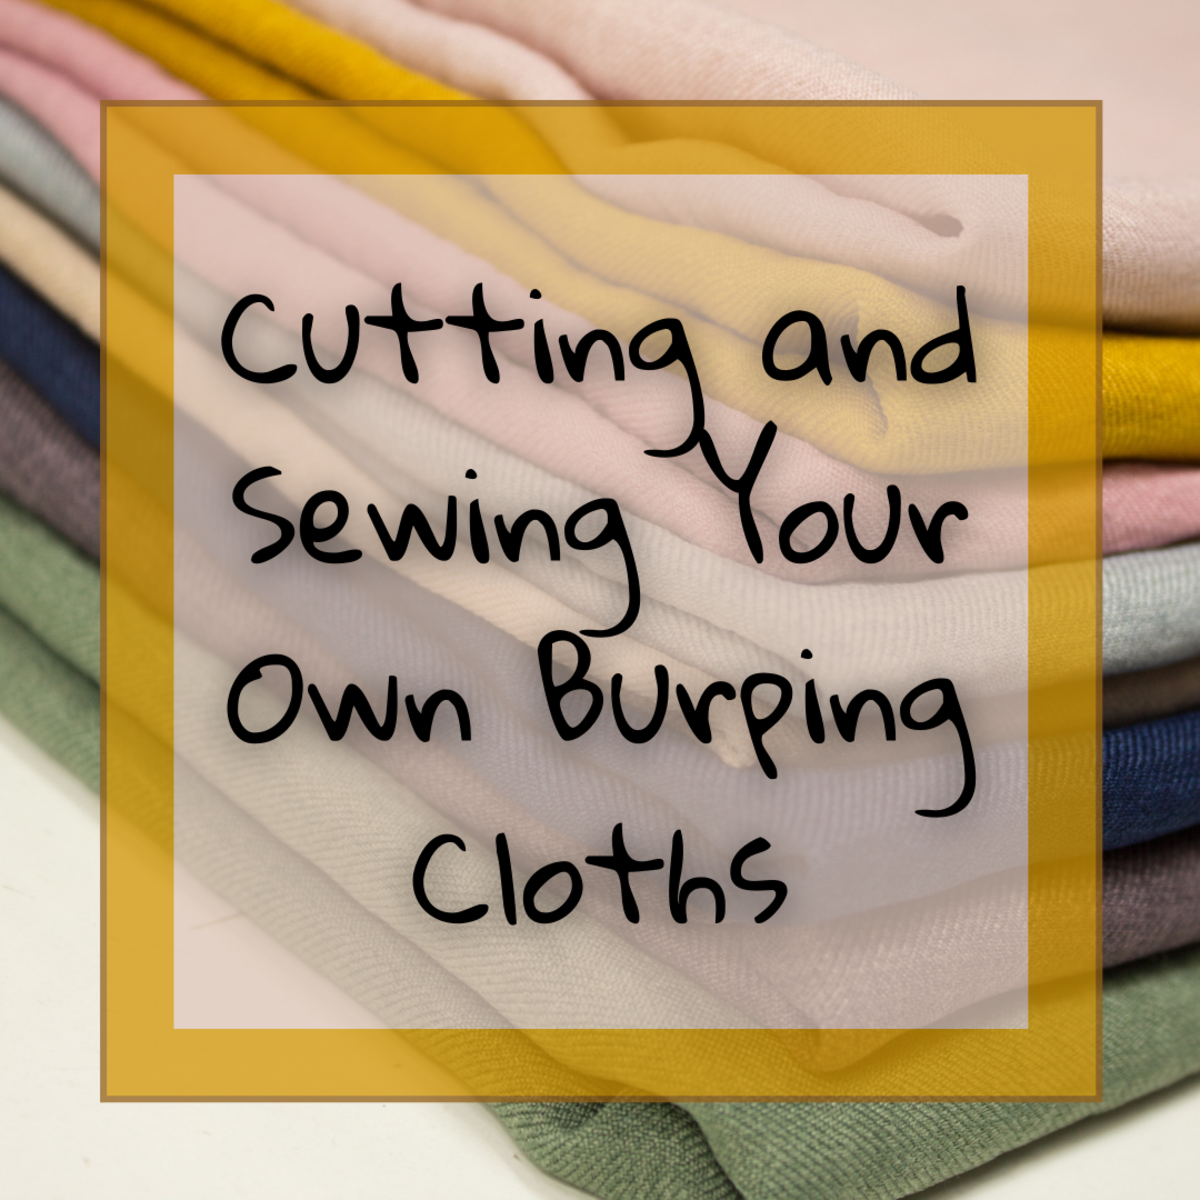 This step-by-step guide will help you design, cut, and sew homemade burping cloths for babies.